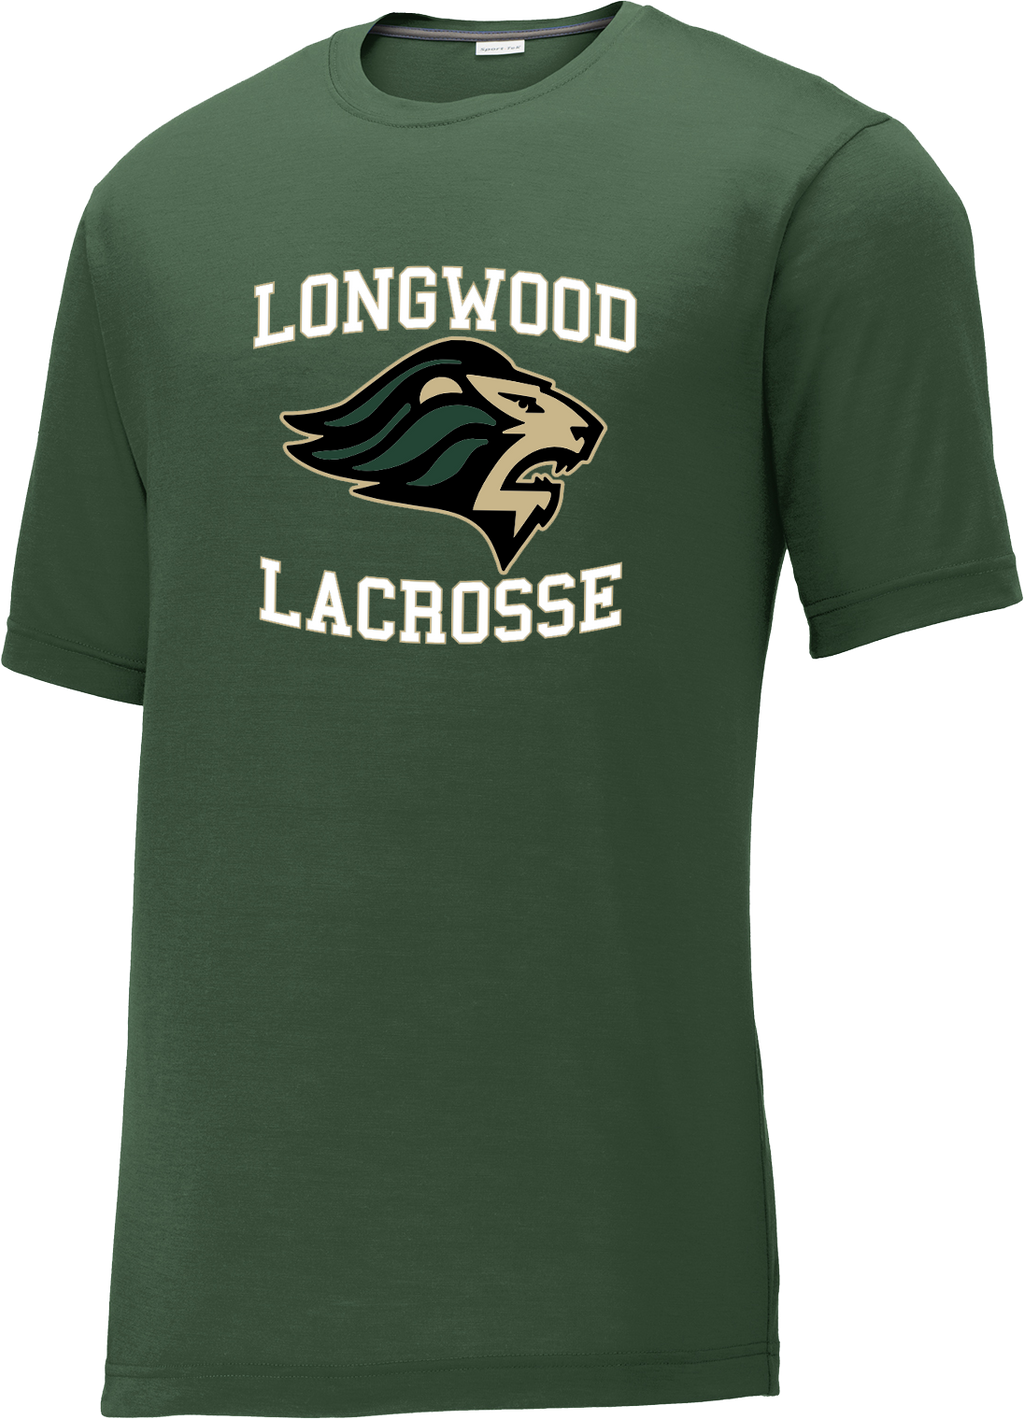 Longwood Lacrosse Green CottonTouch Performance T-Shirt